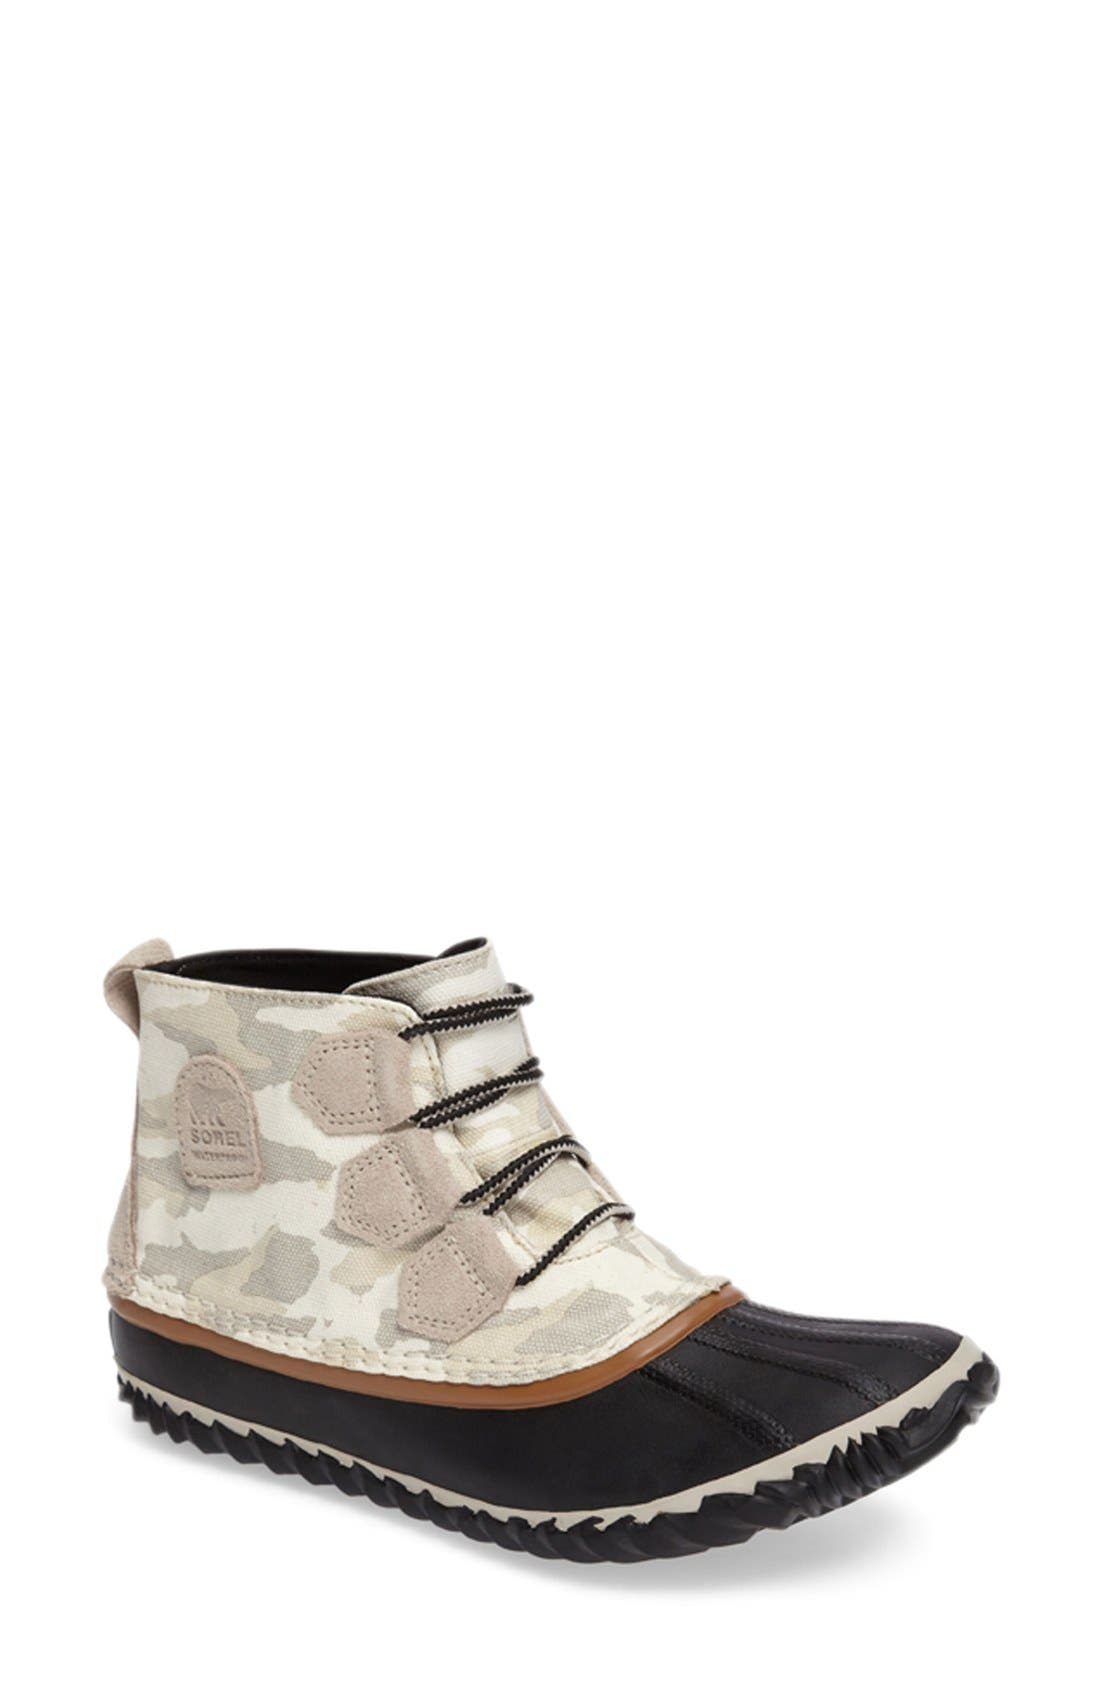 Main Image - SOREL Out 'n' About Waterproof Duck Boot (Women)